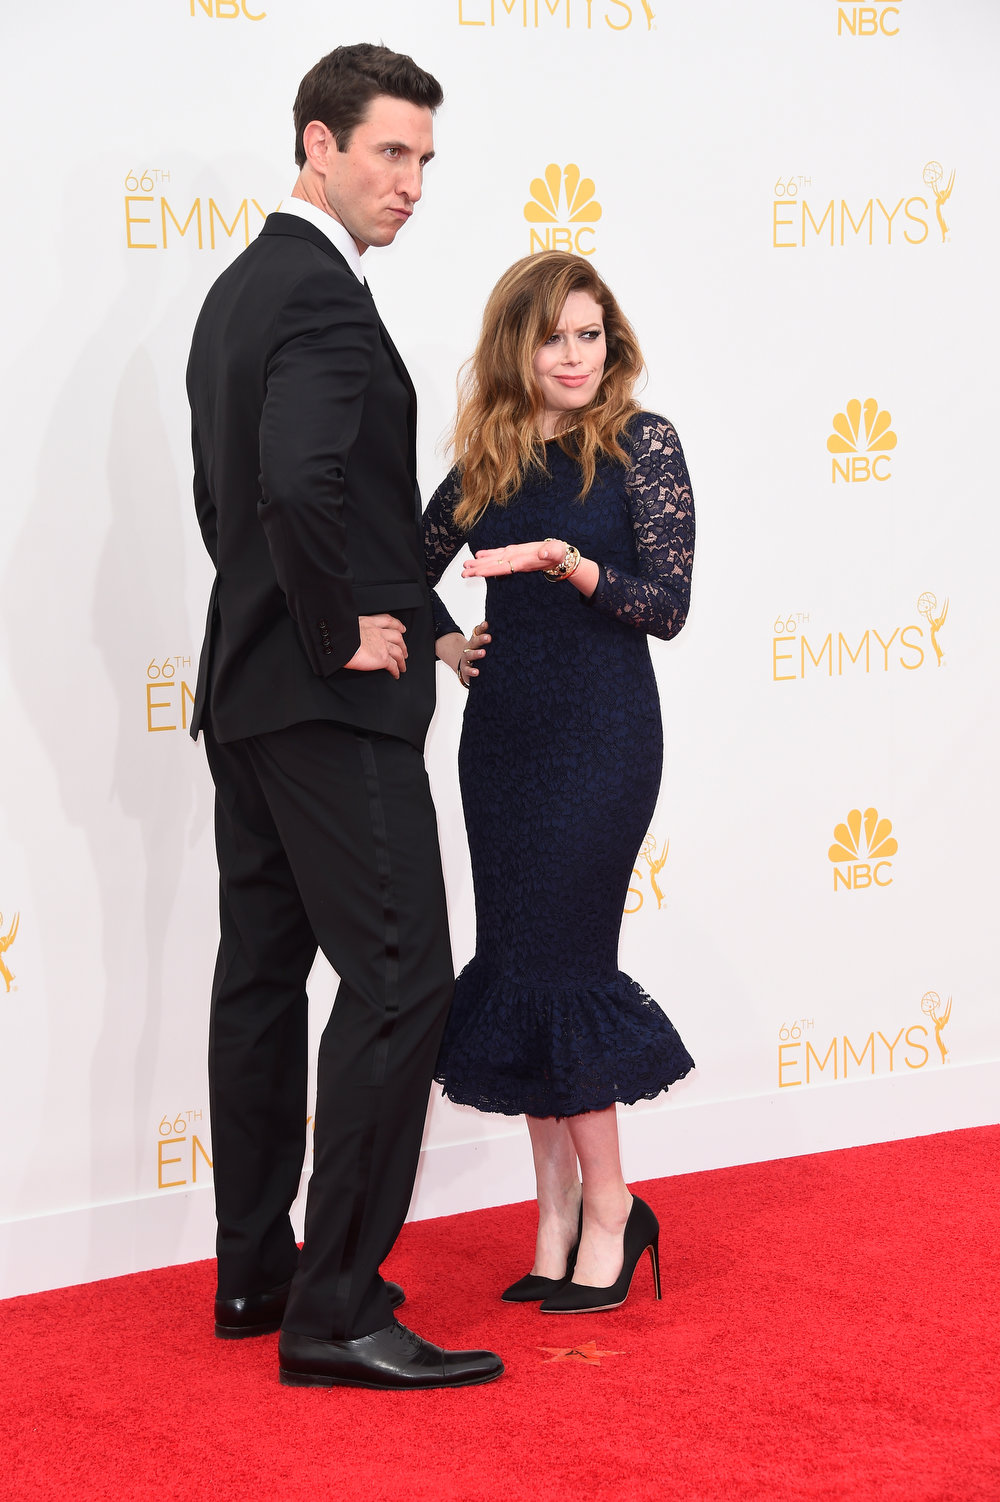 . Actors Pablo Schreiber (L) and Natasha Lyonne attend the 66th Annual Primetime Emmy Awards held at Nokia Theatre L.A. Live on August 25, 2014 in Los Angeles, California.  (Photo by Frazer Harrison/Getty Images)